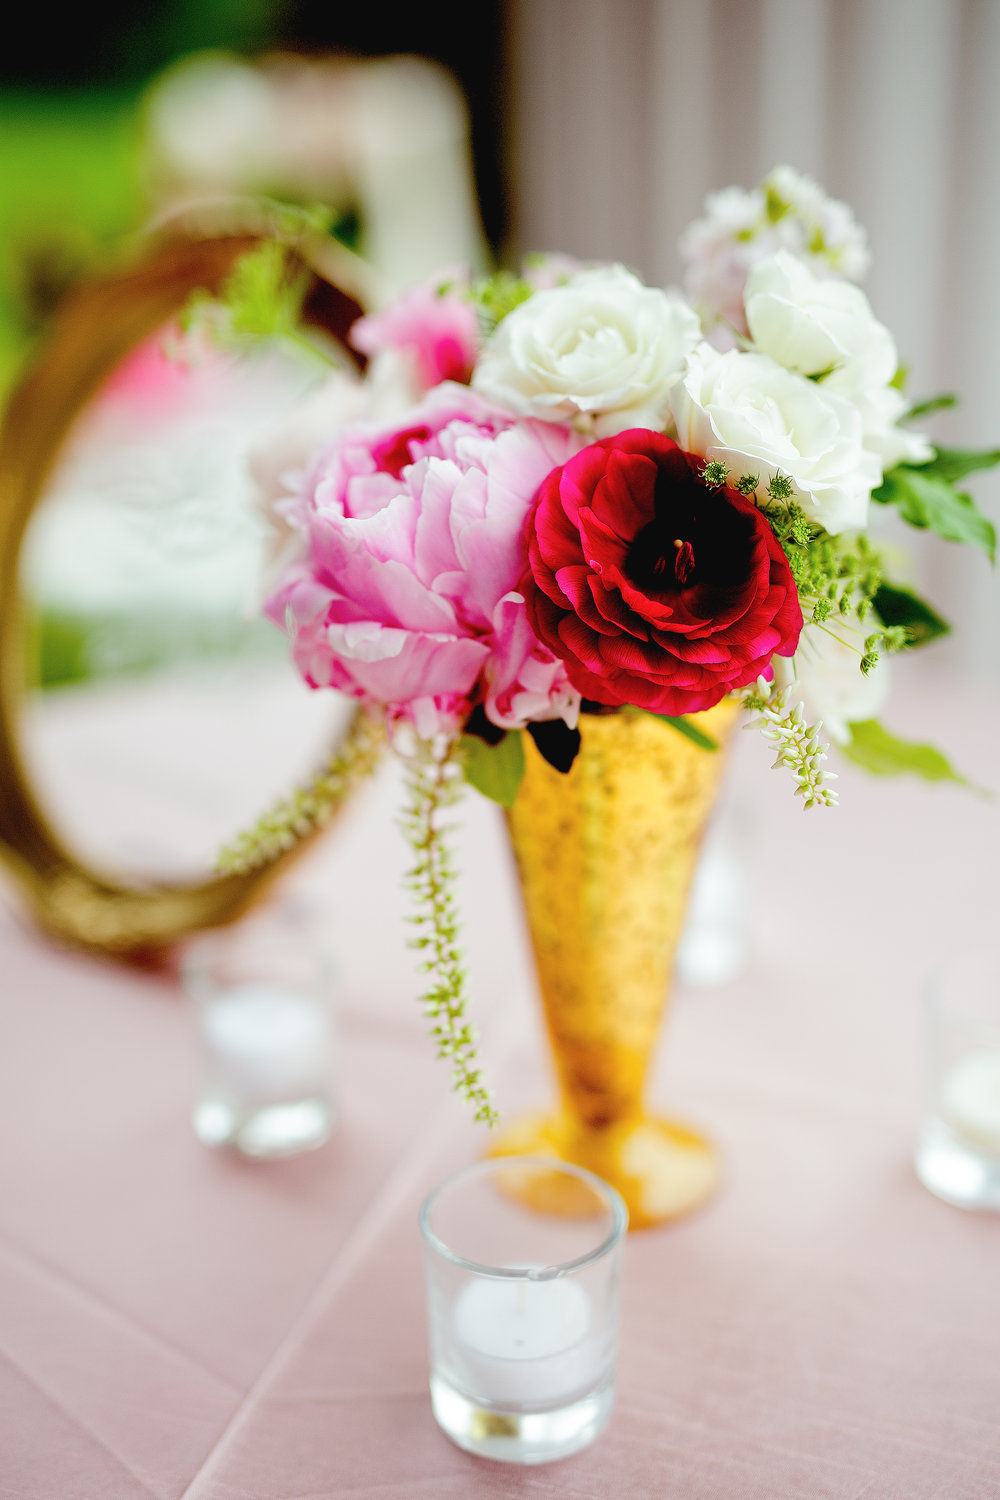 Cocktail flowers in gold vase